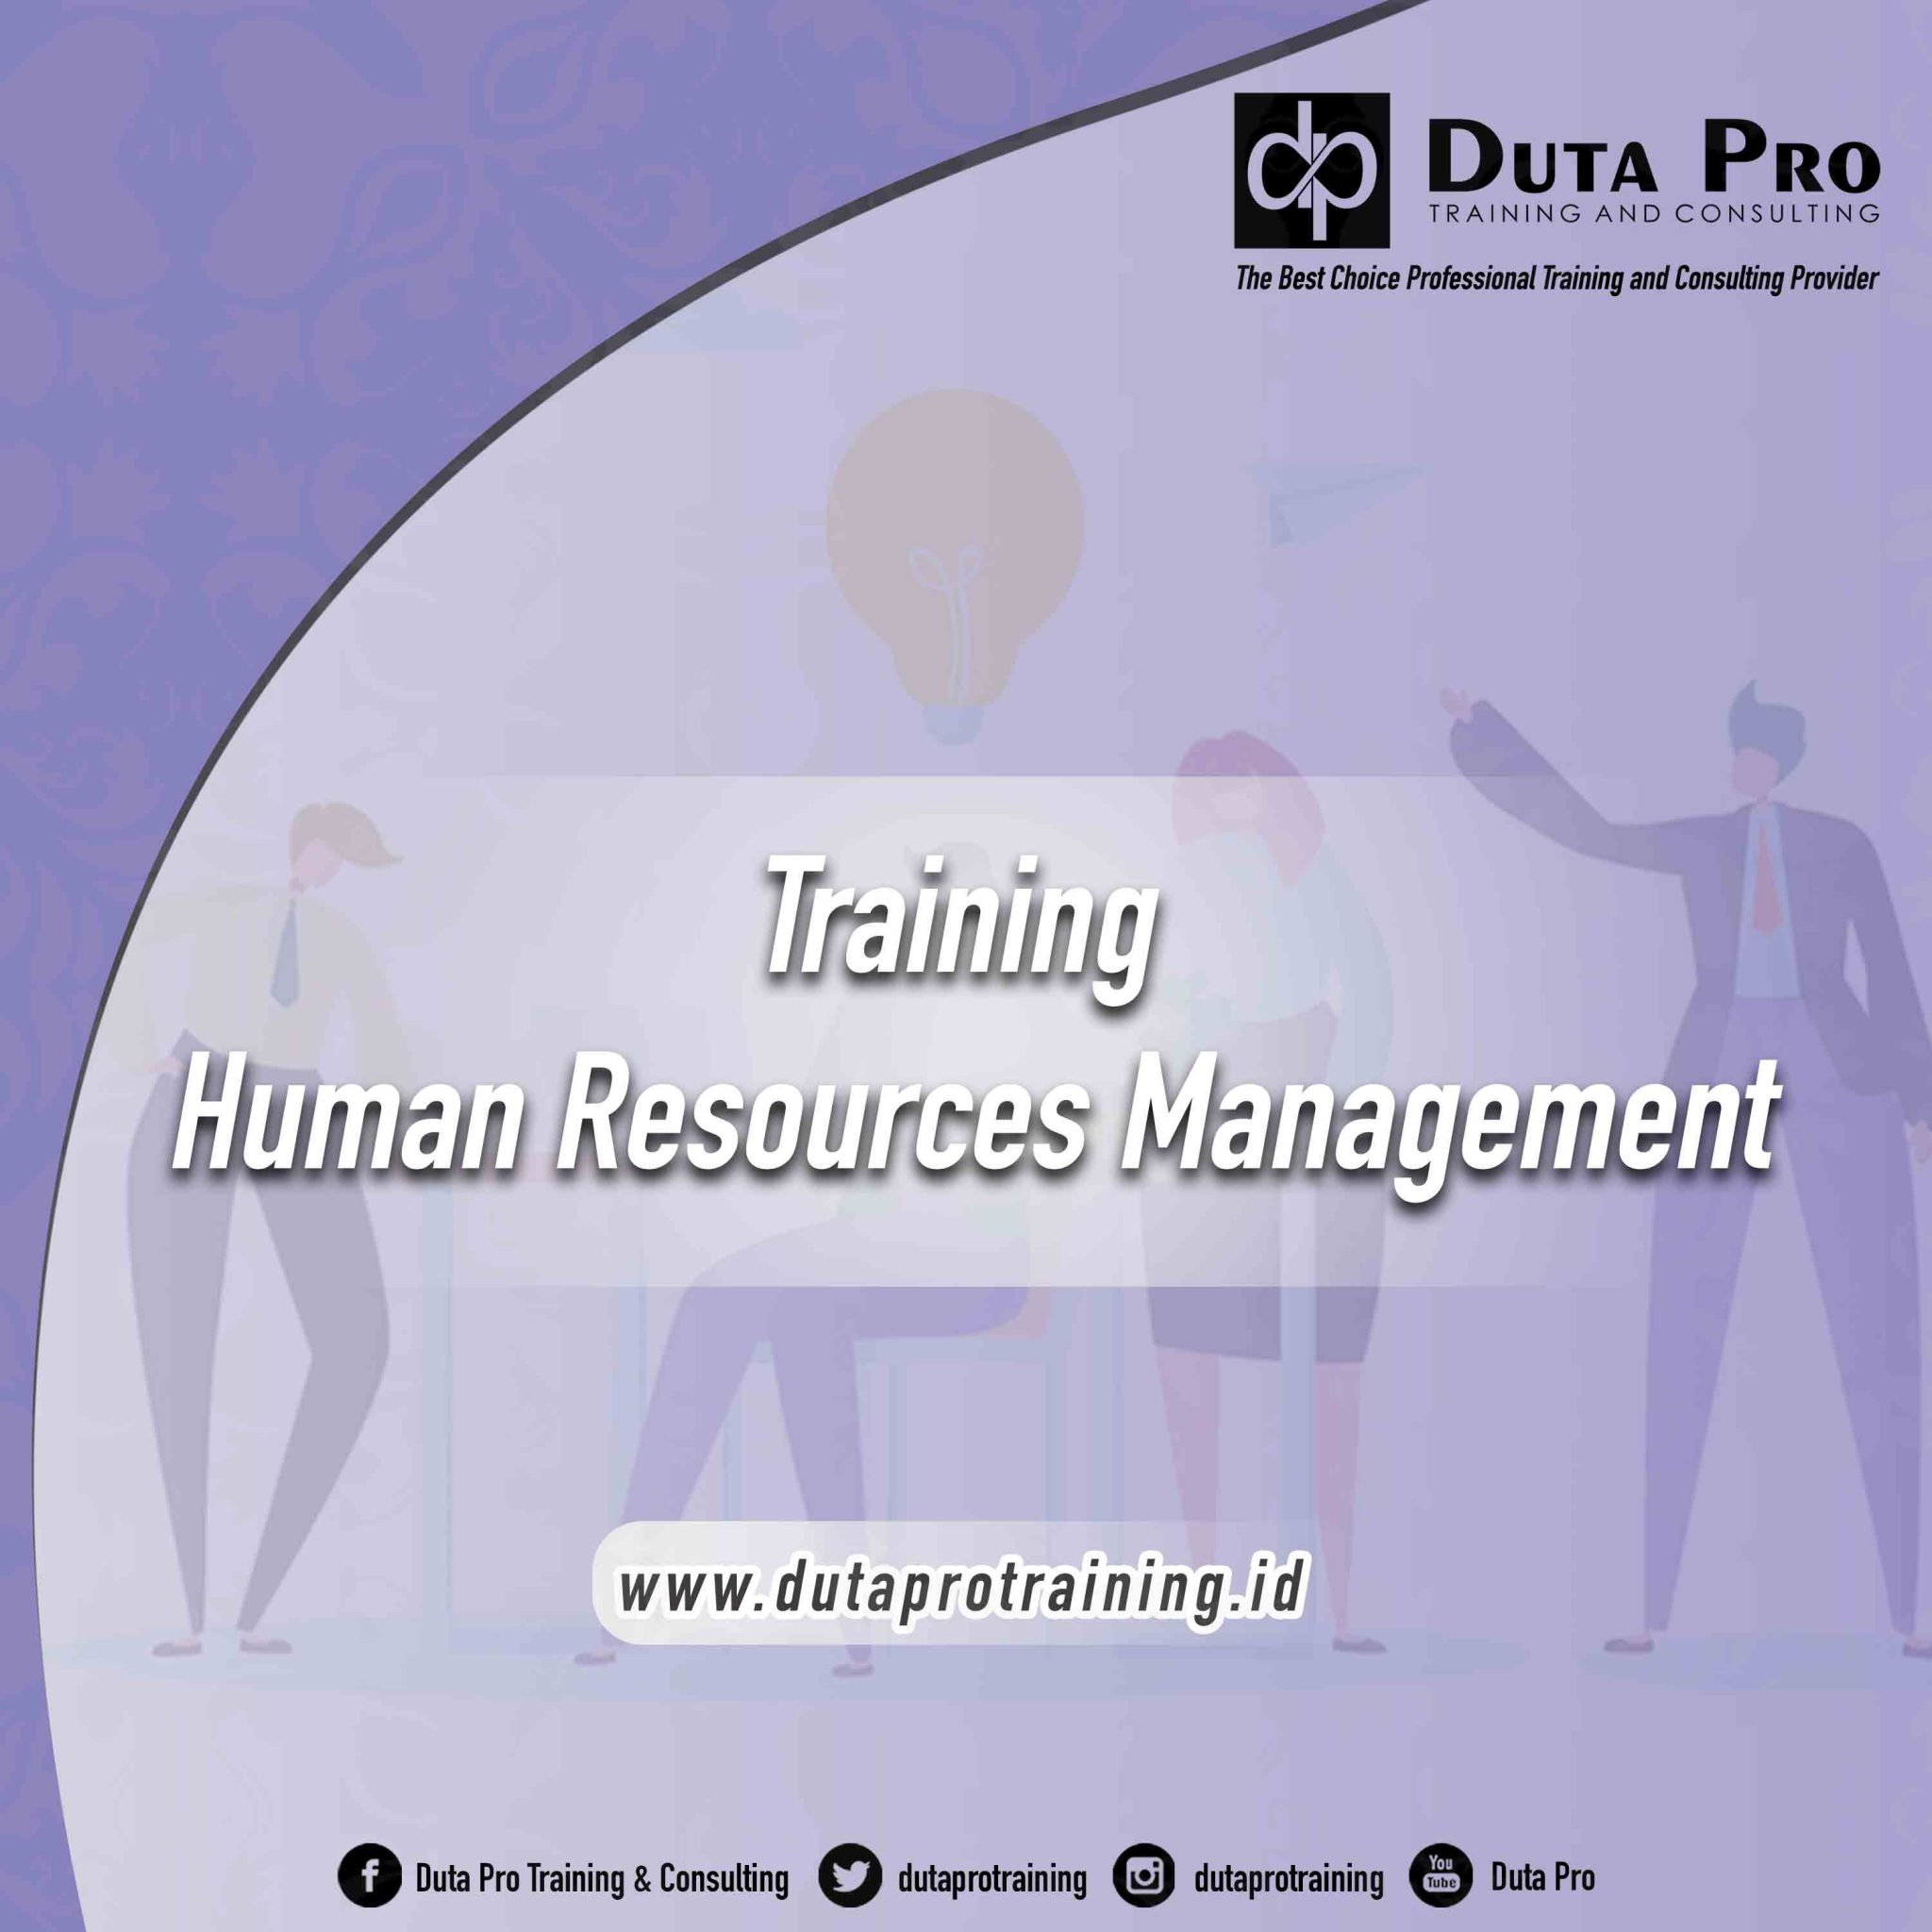 Training Human Resources Management